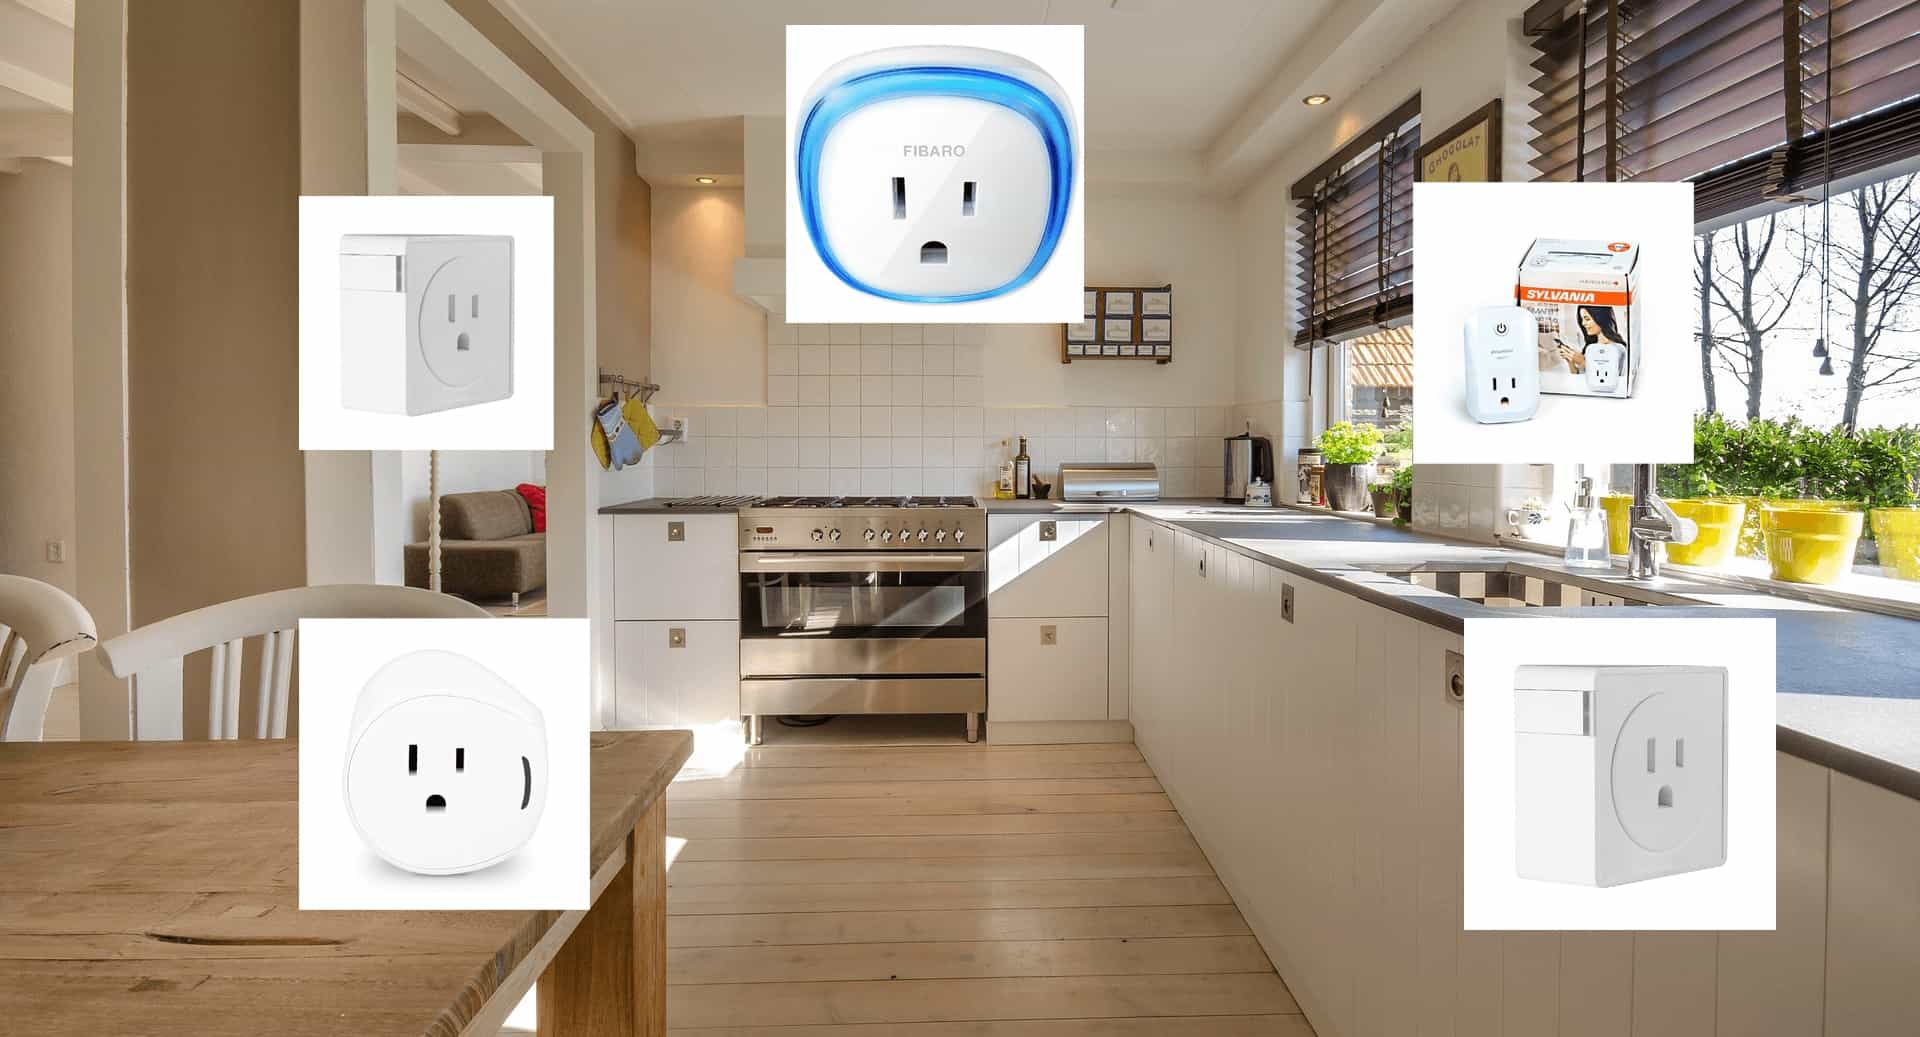 5 Best SmartThings Wall Plugs in 2019 - Reviewed and Compared